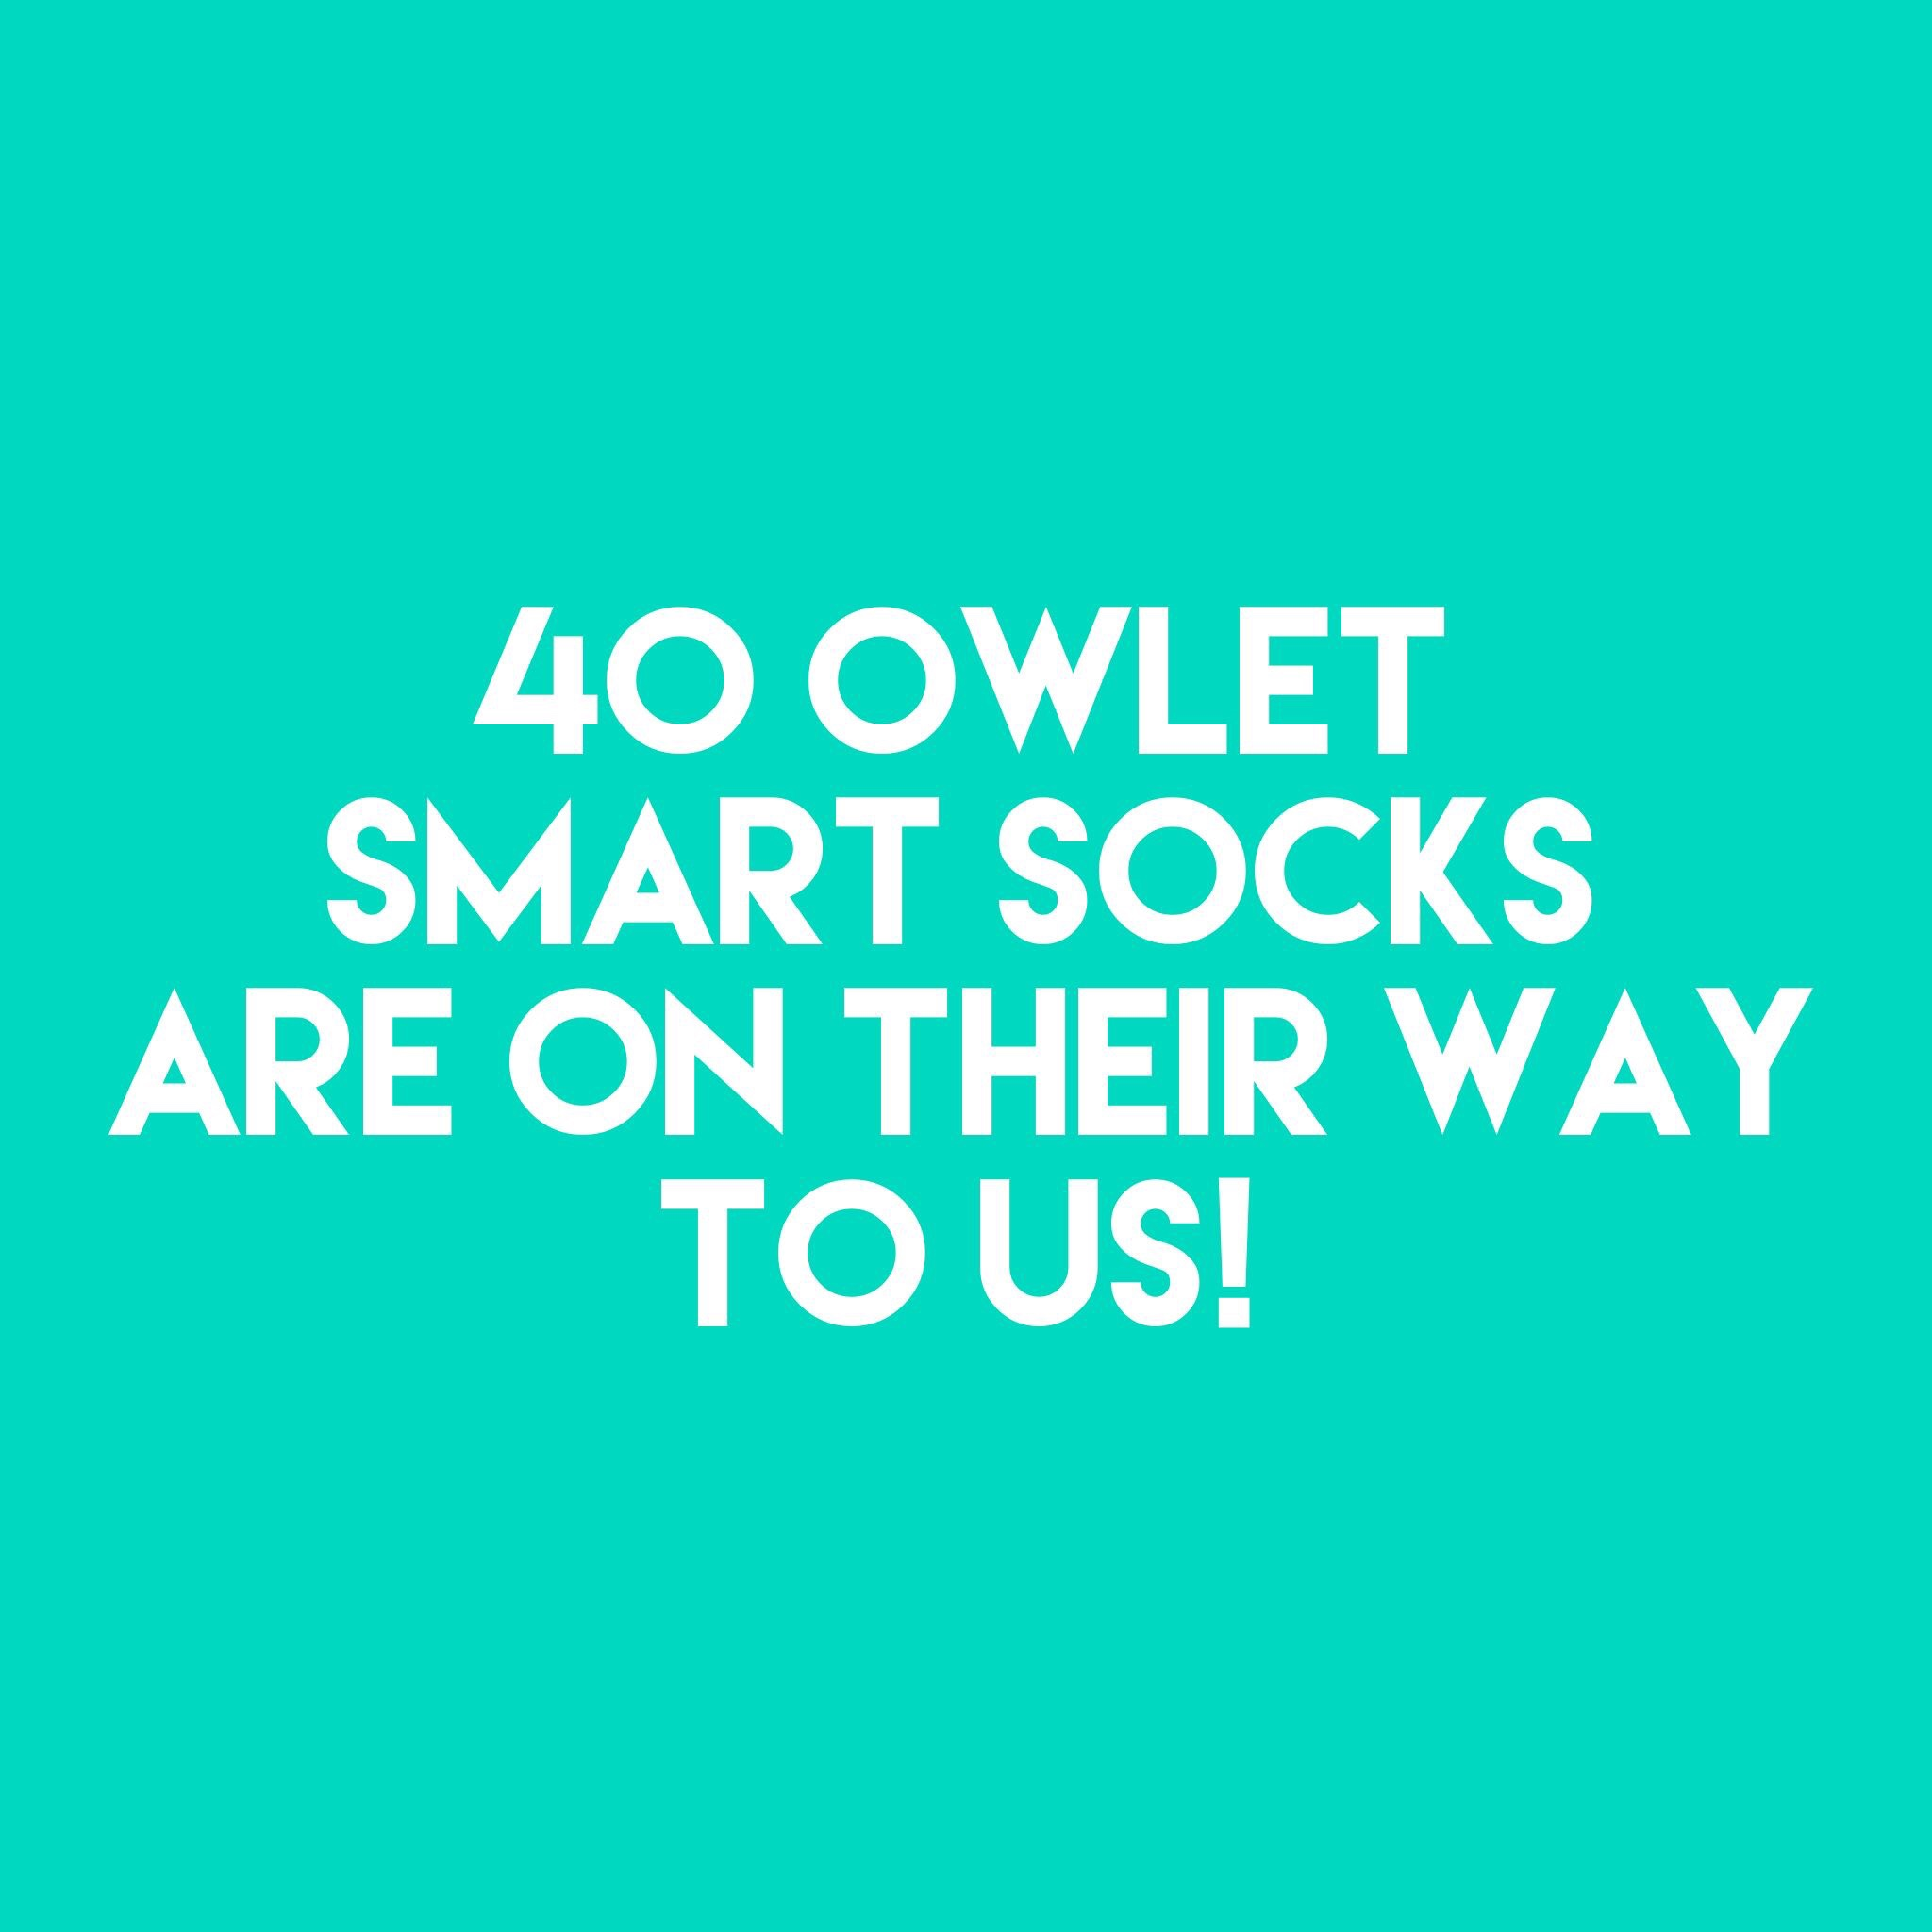 40 Owlet Smart Sock Placements To Start Off 2019